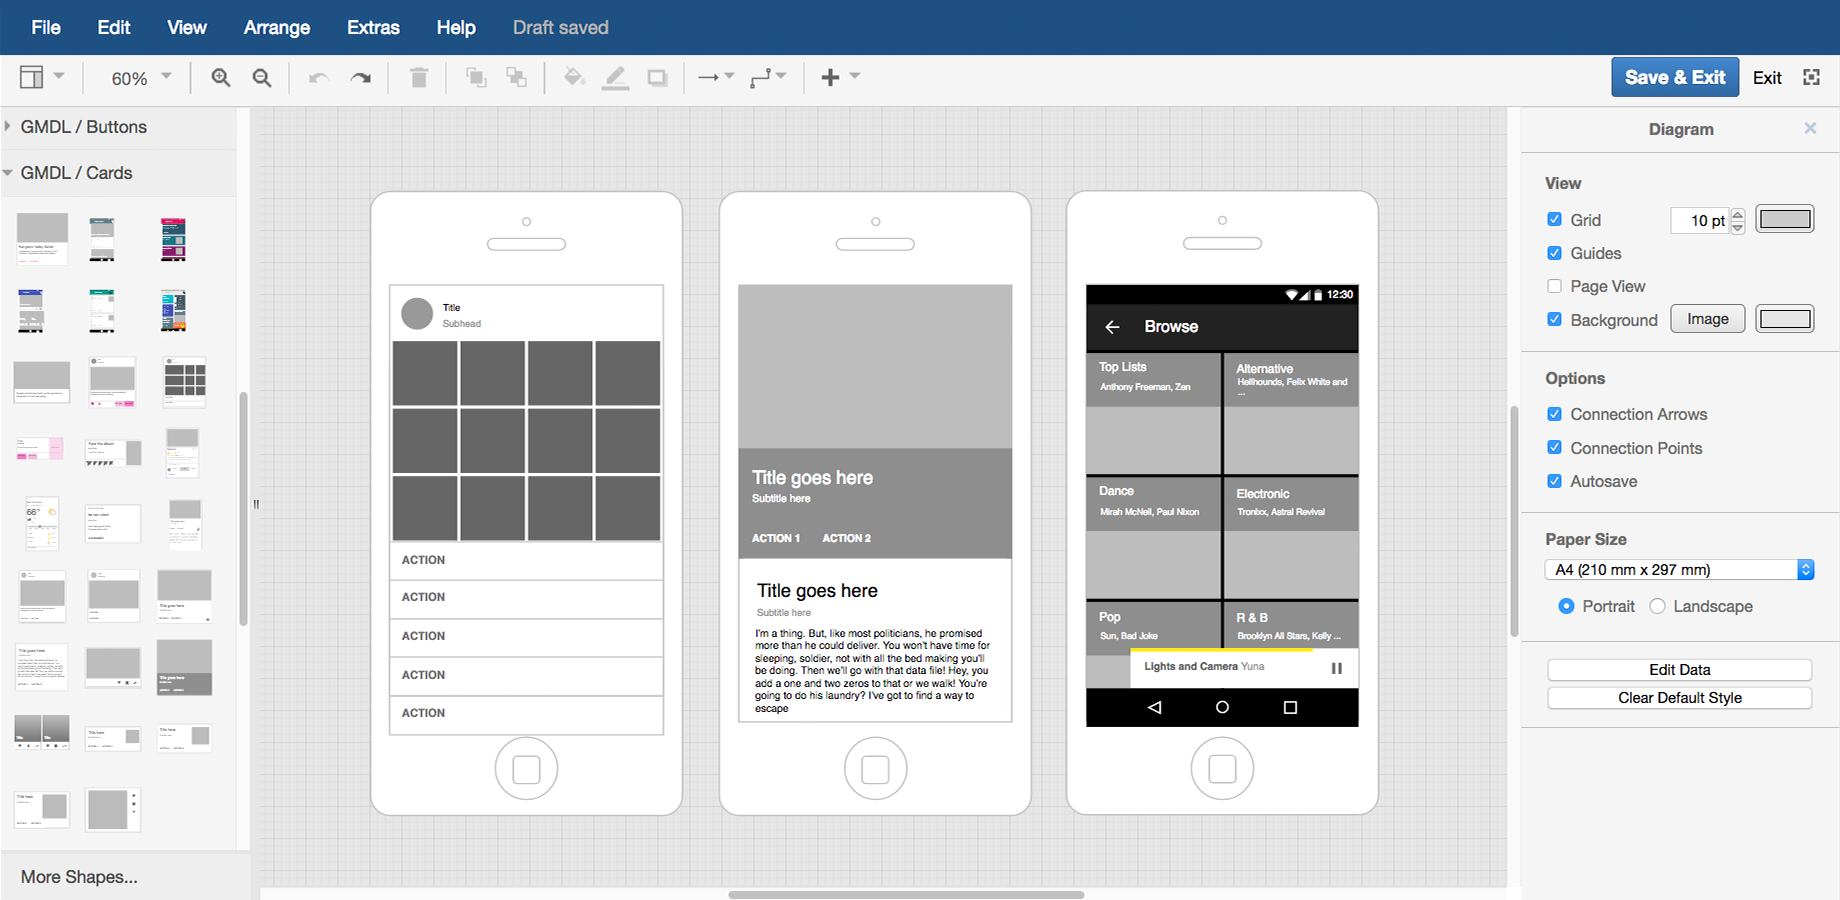 Create a material design digram in draw.io